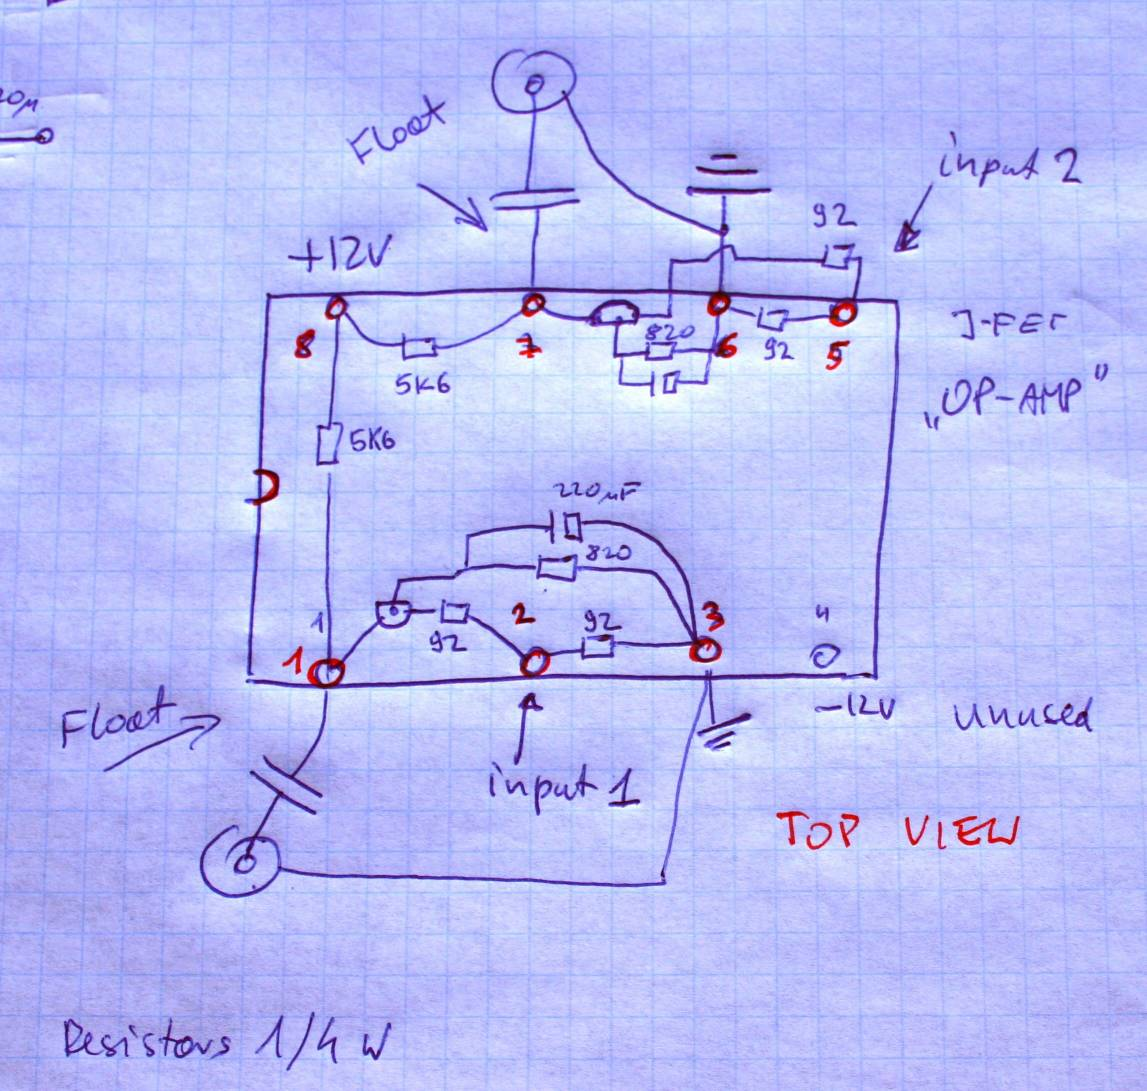 Jfet Pin Diagram Opamp Offset Null Circuit Tradeoficcom House Wiring